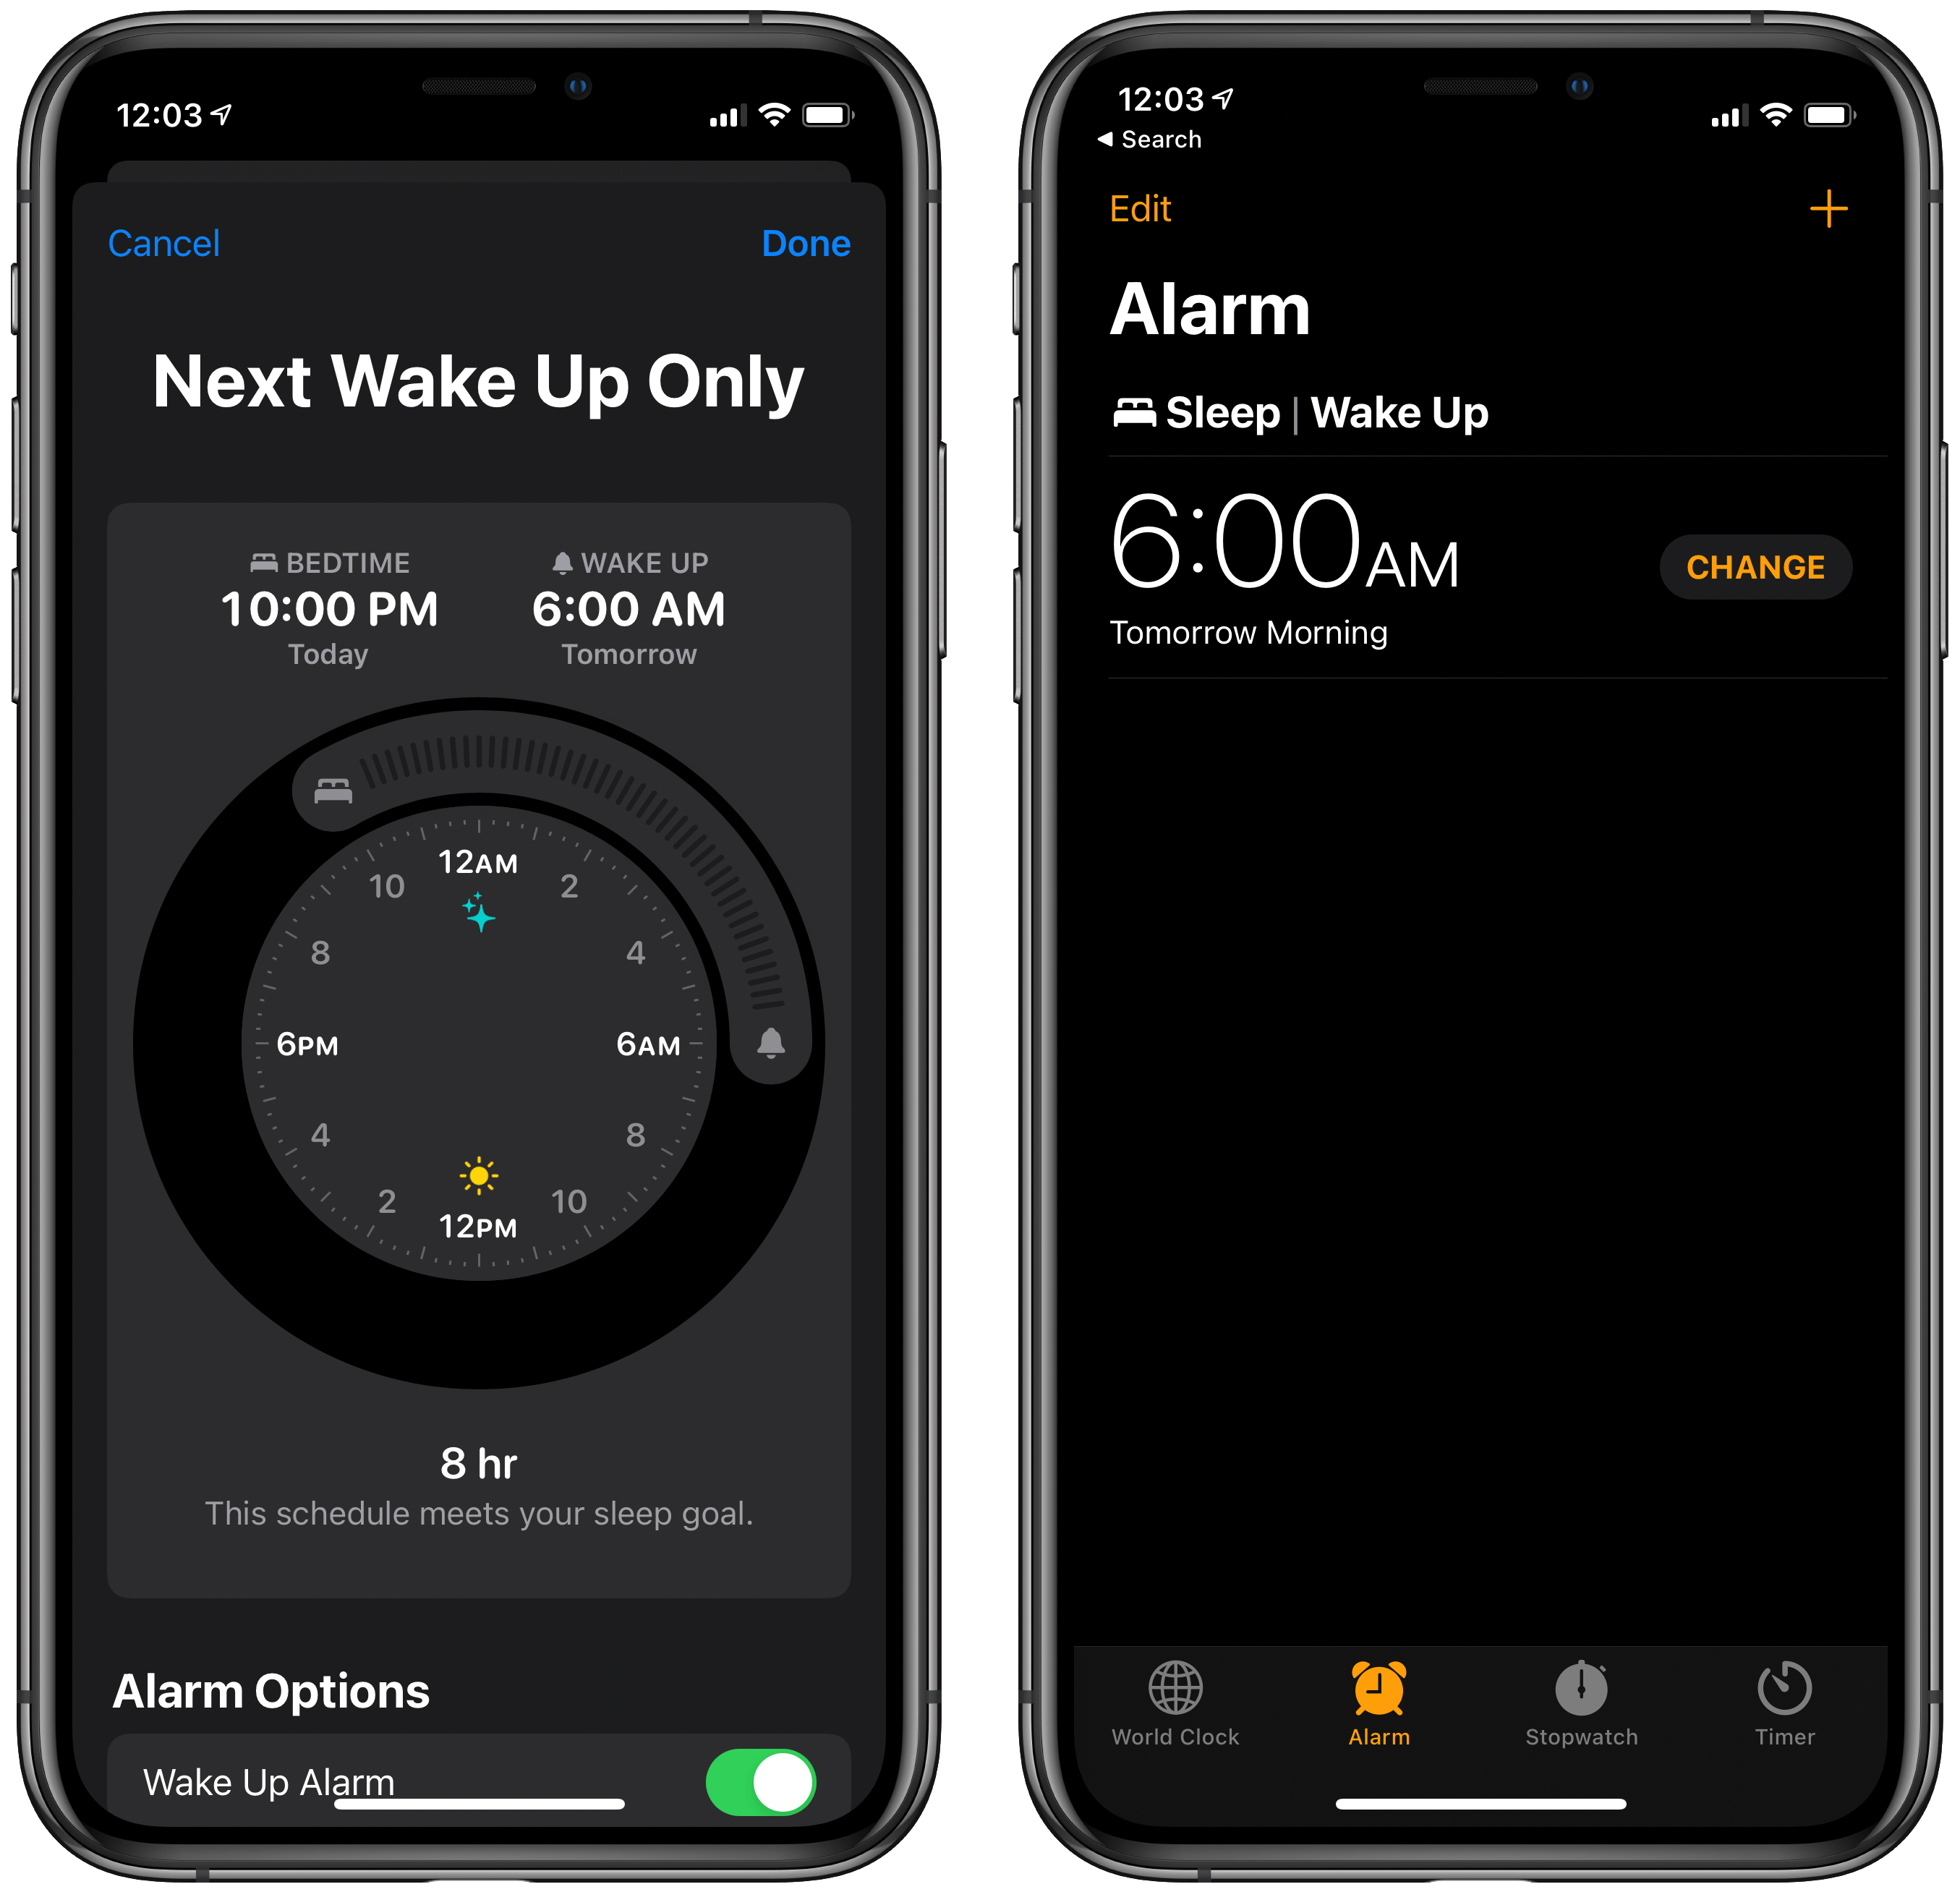 Modifying the next wake up in Health (left) or Clock (right).